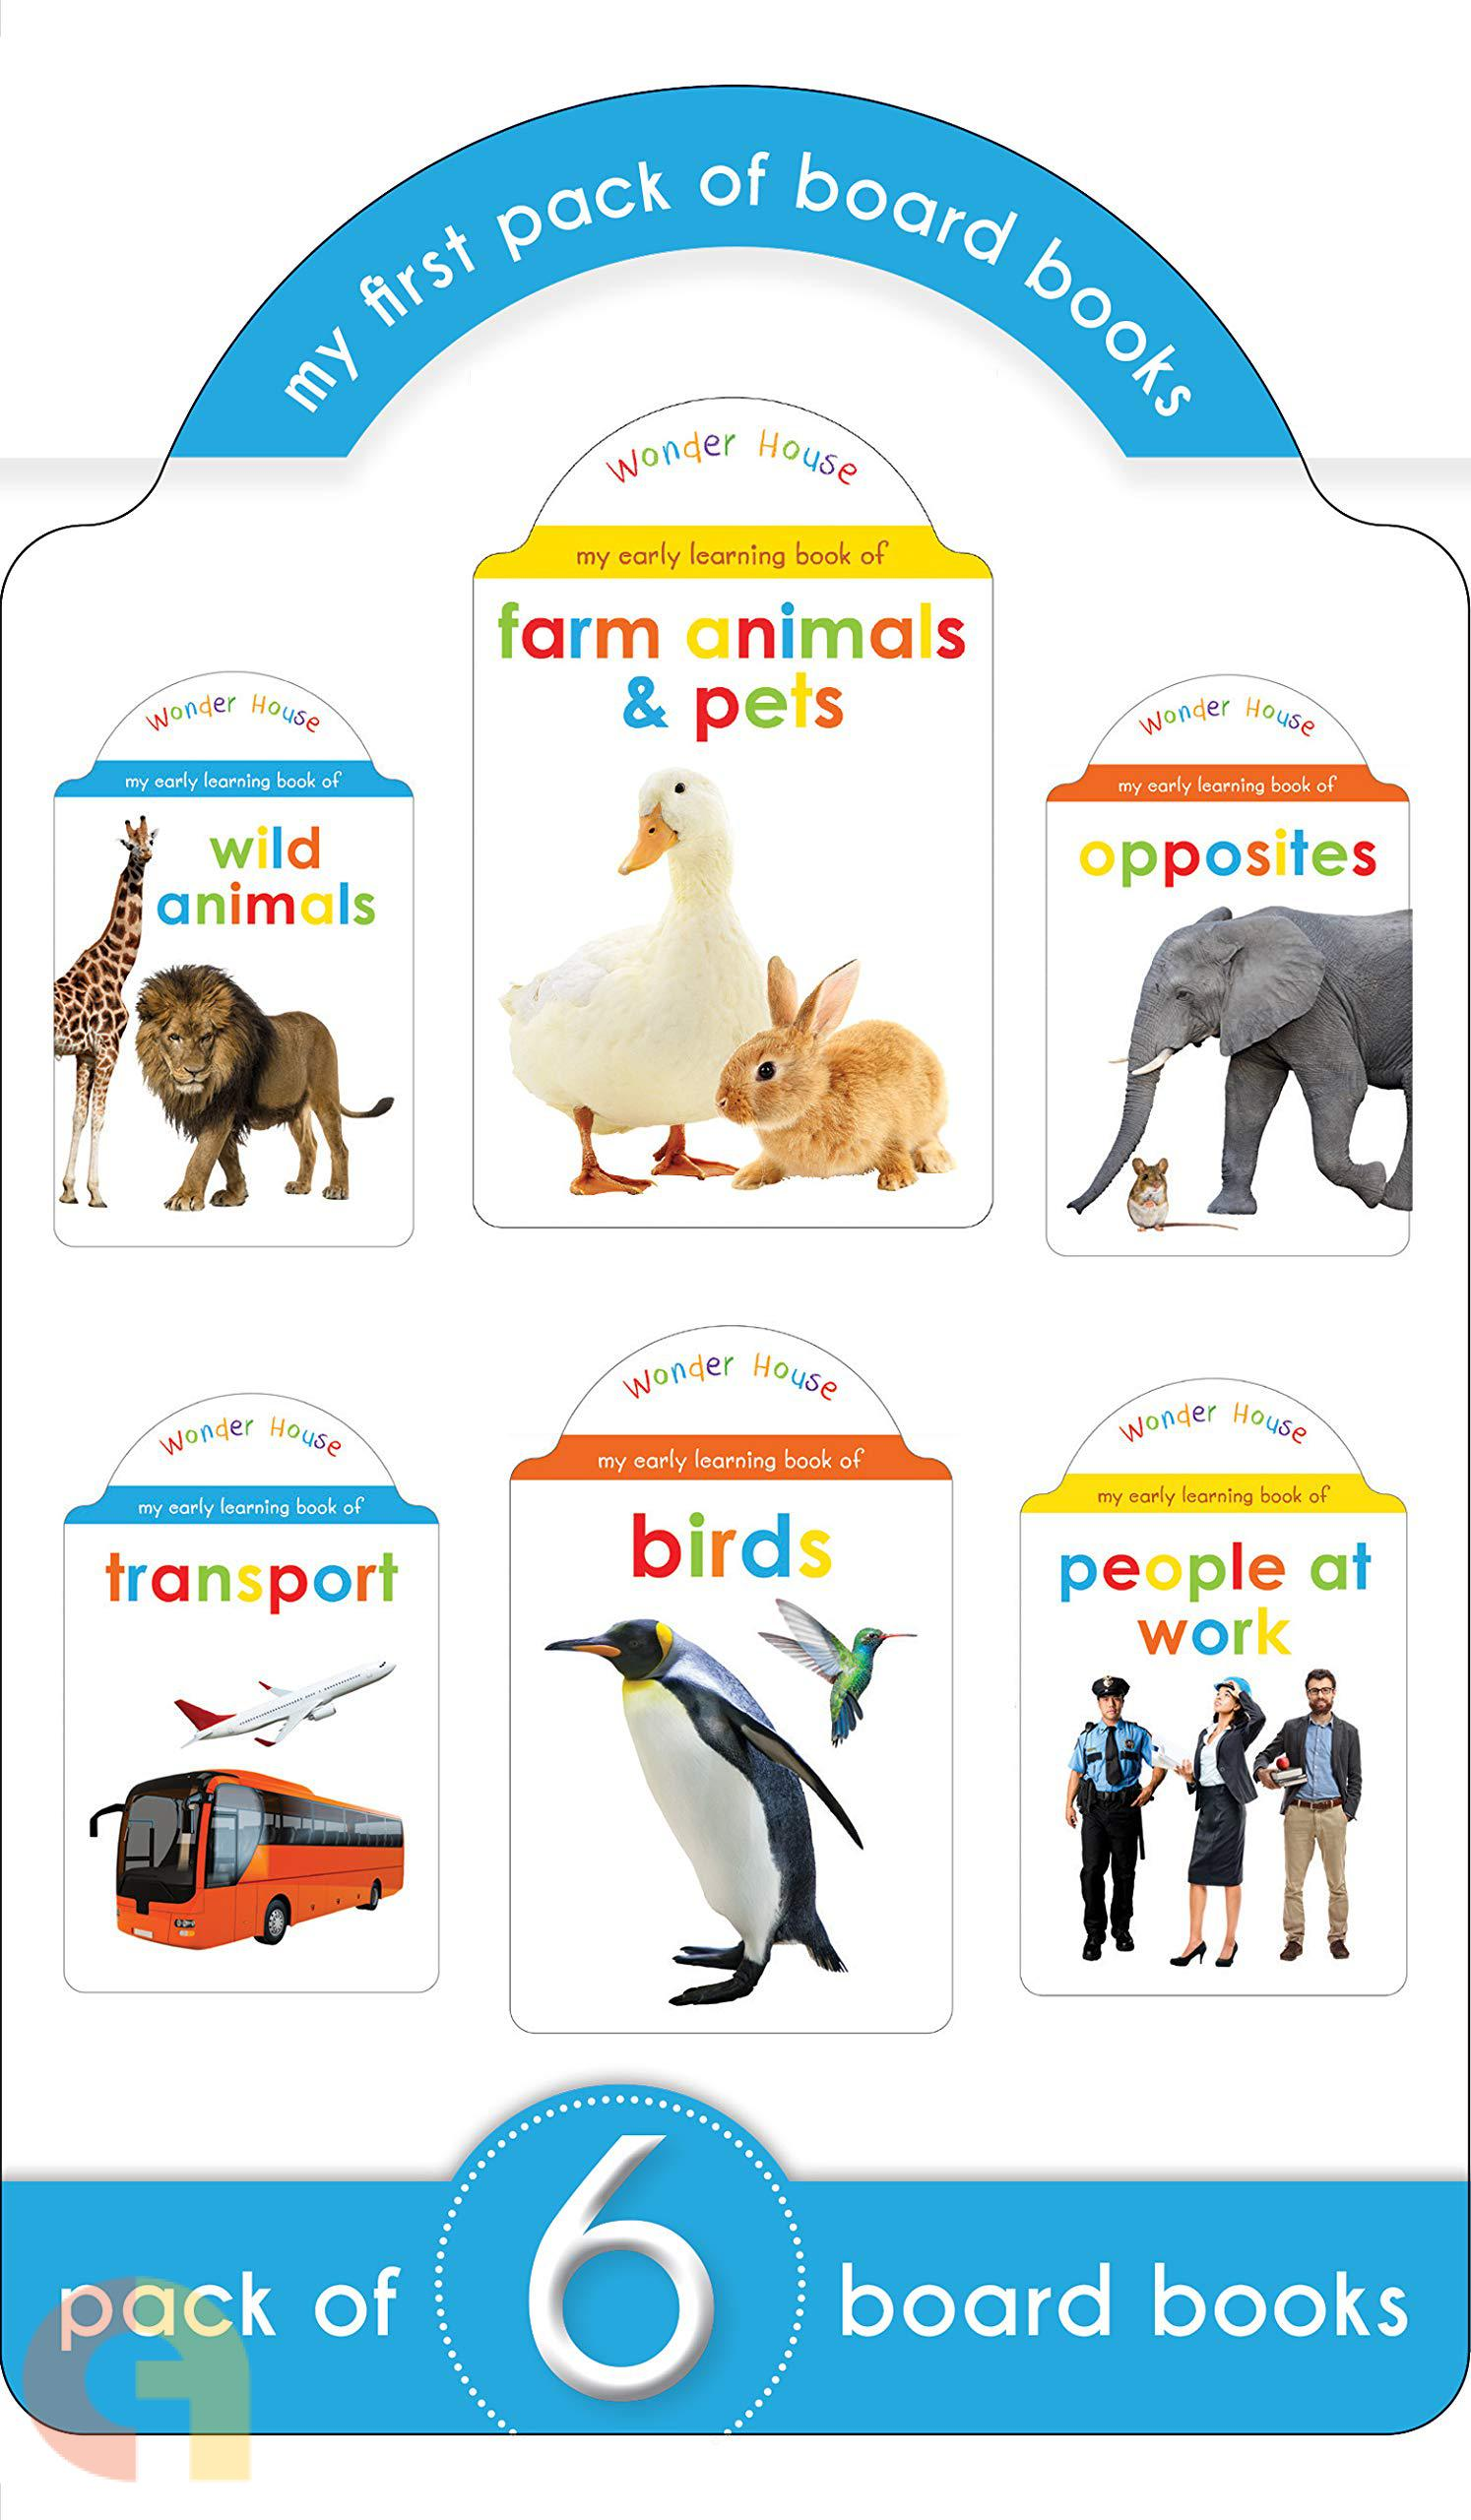 My First Pack of Board Books: Opposites, Wild Animals, Farm Animals and Pets, Birds, Transport, People At Work